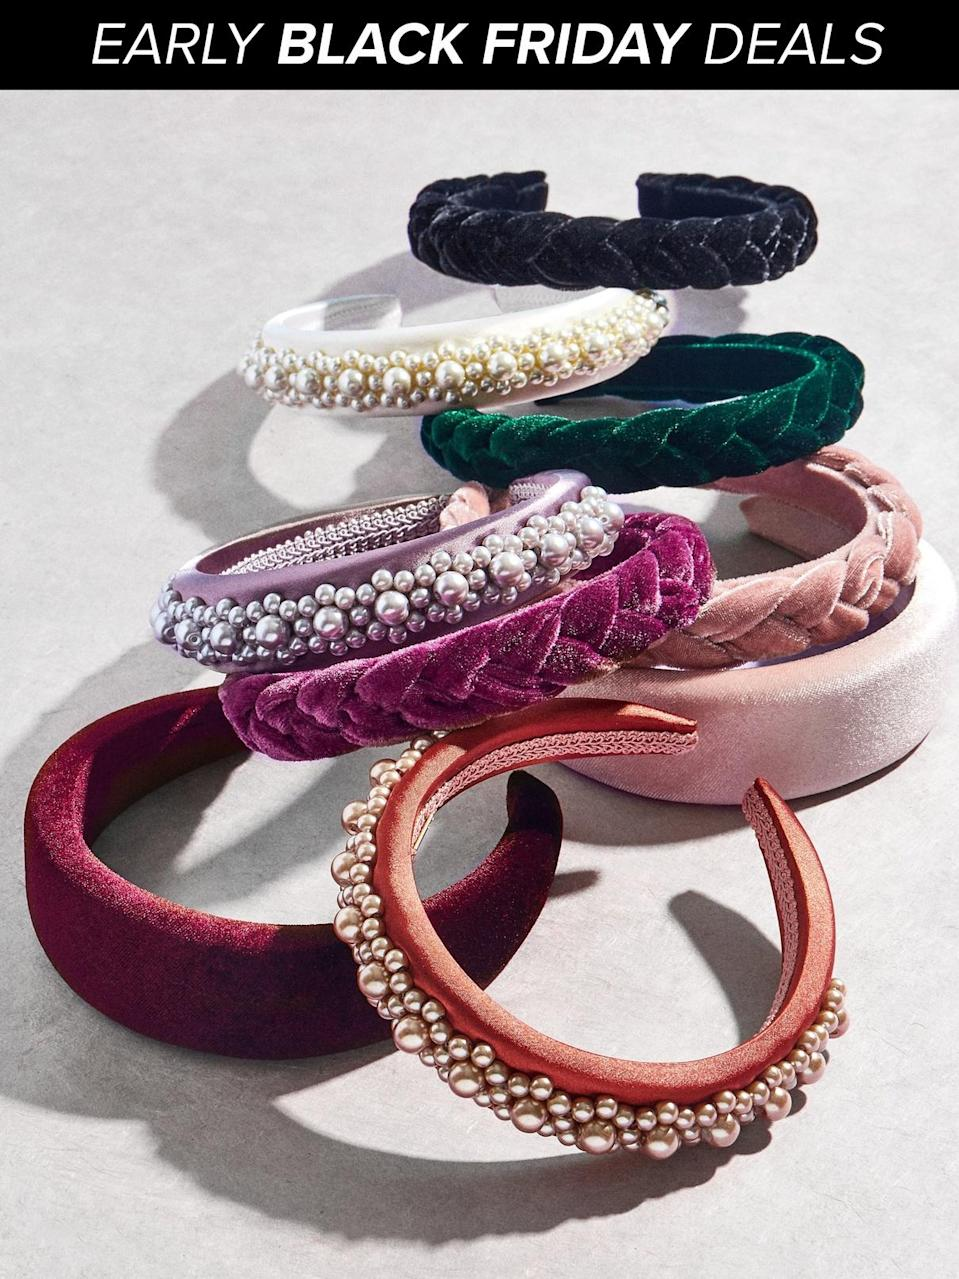 """<p><strong>BaubleBar</strong></p><p>baublebar.com</p><p><strong>$20.00</strong></p><p><a href=""""https://go.redirectingat.com?id=74968X1596630&url=https%3A%2F%2Fwww.baublebar.com%2Fproduct%2F50229-pick-2-headbands&sref=http%3A%2F%2Fwww.goodhousekeeping.com%2Fholidays%2Fgift-ideas%2Fg153%2Fgifts-under-20-dollars%2F"""" rel=""""nofollow noopener"""" target=""""_blank"""" data-ylk=""""slk:Shop Now"""" class=""""link rapid-noclick-resp"""">Shop Now</a></p><p>Complete her holiday outfit (New Years Eve, too!) with a pair of velvet, pearl, or beaded headbands. Mix and match between any of the selected Baublebar styles and colors until you find a look that she'll love. </p><p><strong>RELATED:</strong> <a href=""""https://www.goodhousekeeping.com/holidays/gift-ideas/g1405/gifts-for-her/"""" rel=""""nofollow noopener"""" target=""""_blank"""" data-ylk=""""slk:The Best Gifts for Her"""" class=""""link rapid-noclick-resp"""">The Best Gifts for Her </a></p>"""